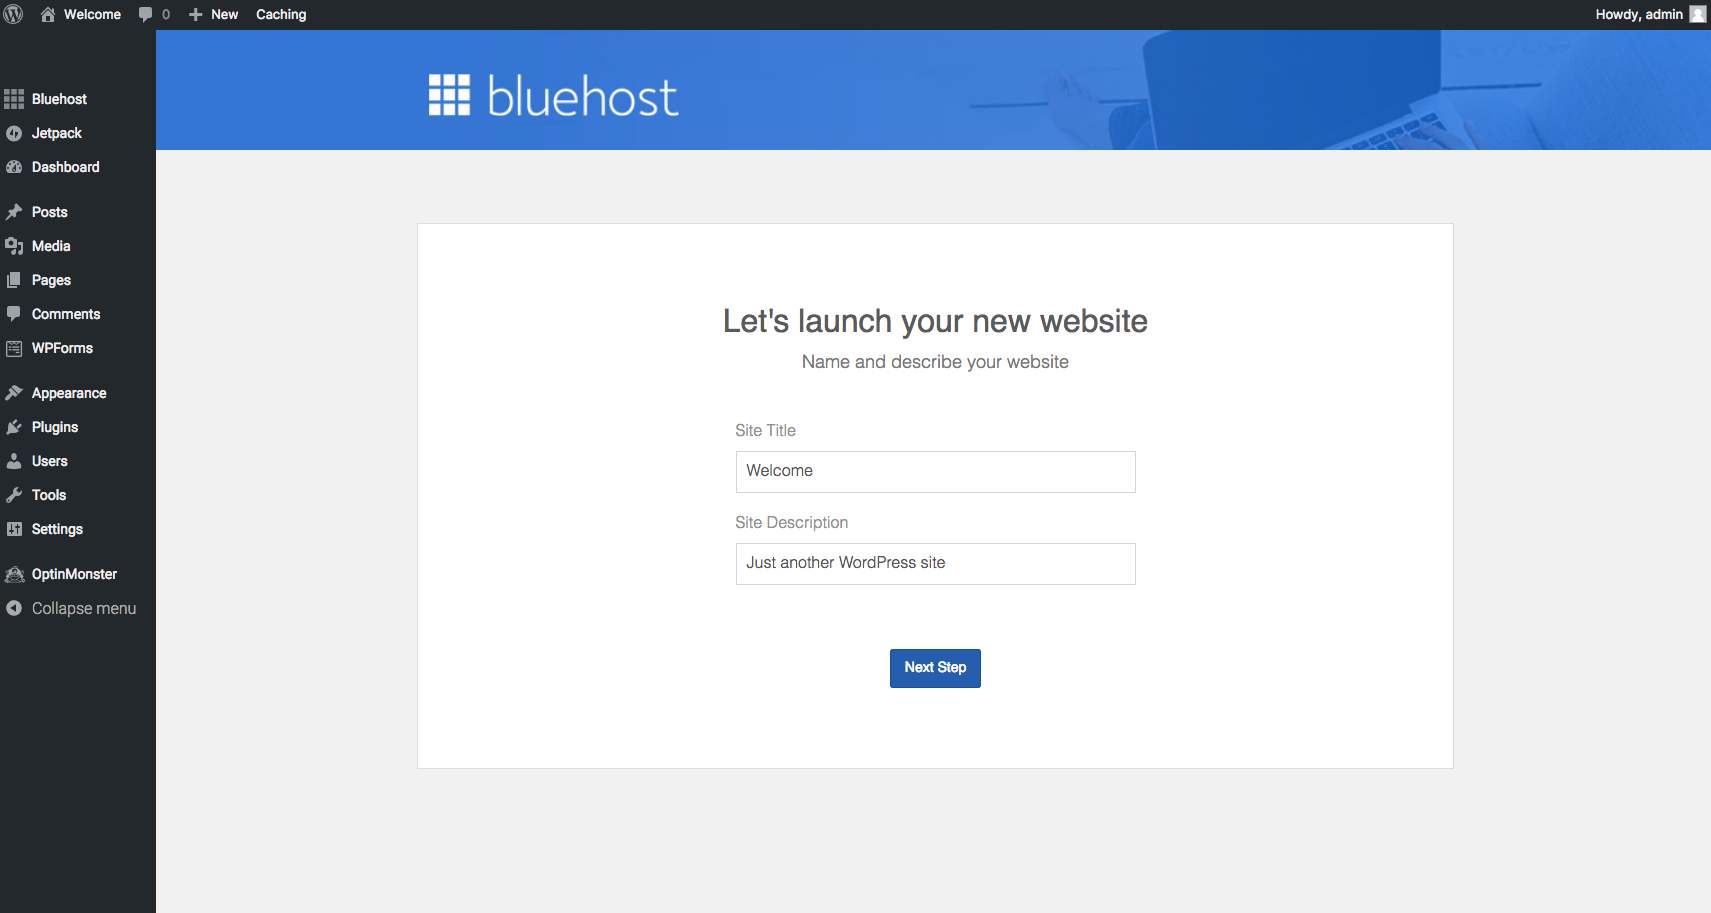 BlueHost launch site